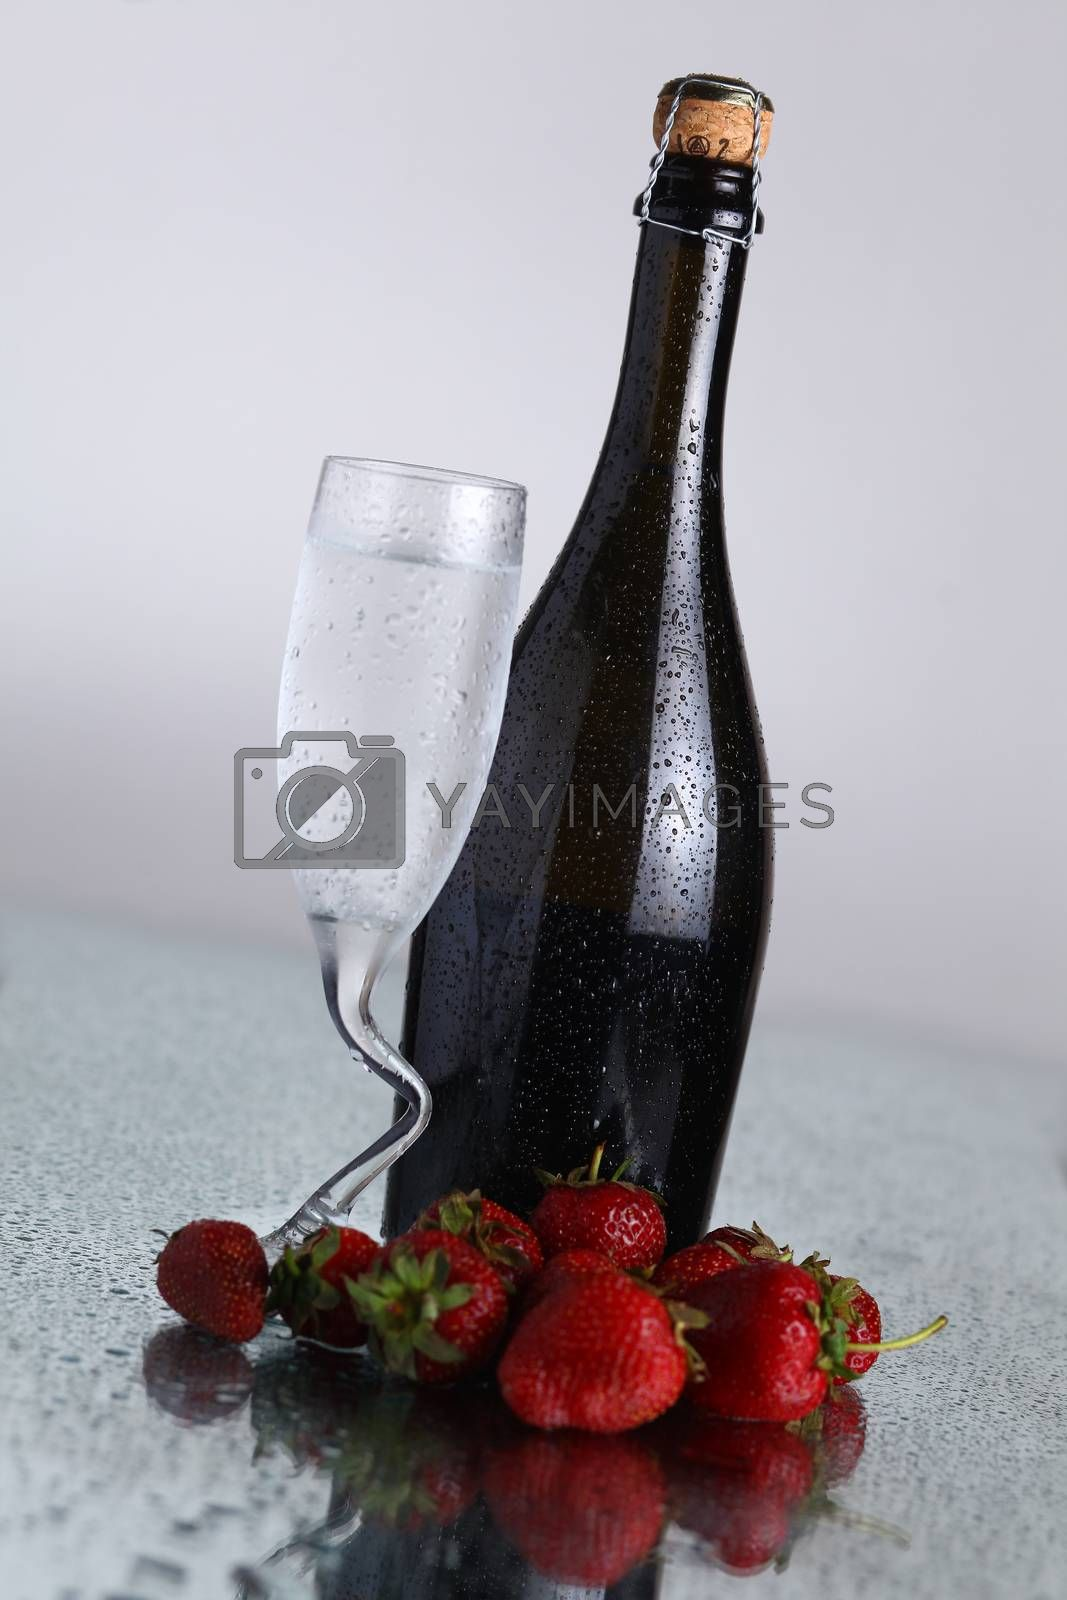 Royalty free image of Champagne bottle by hiddenhallow